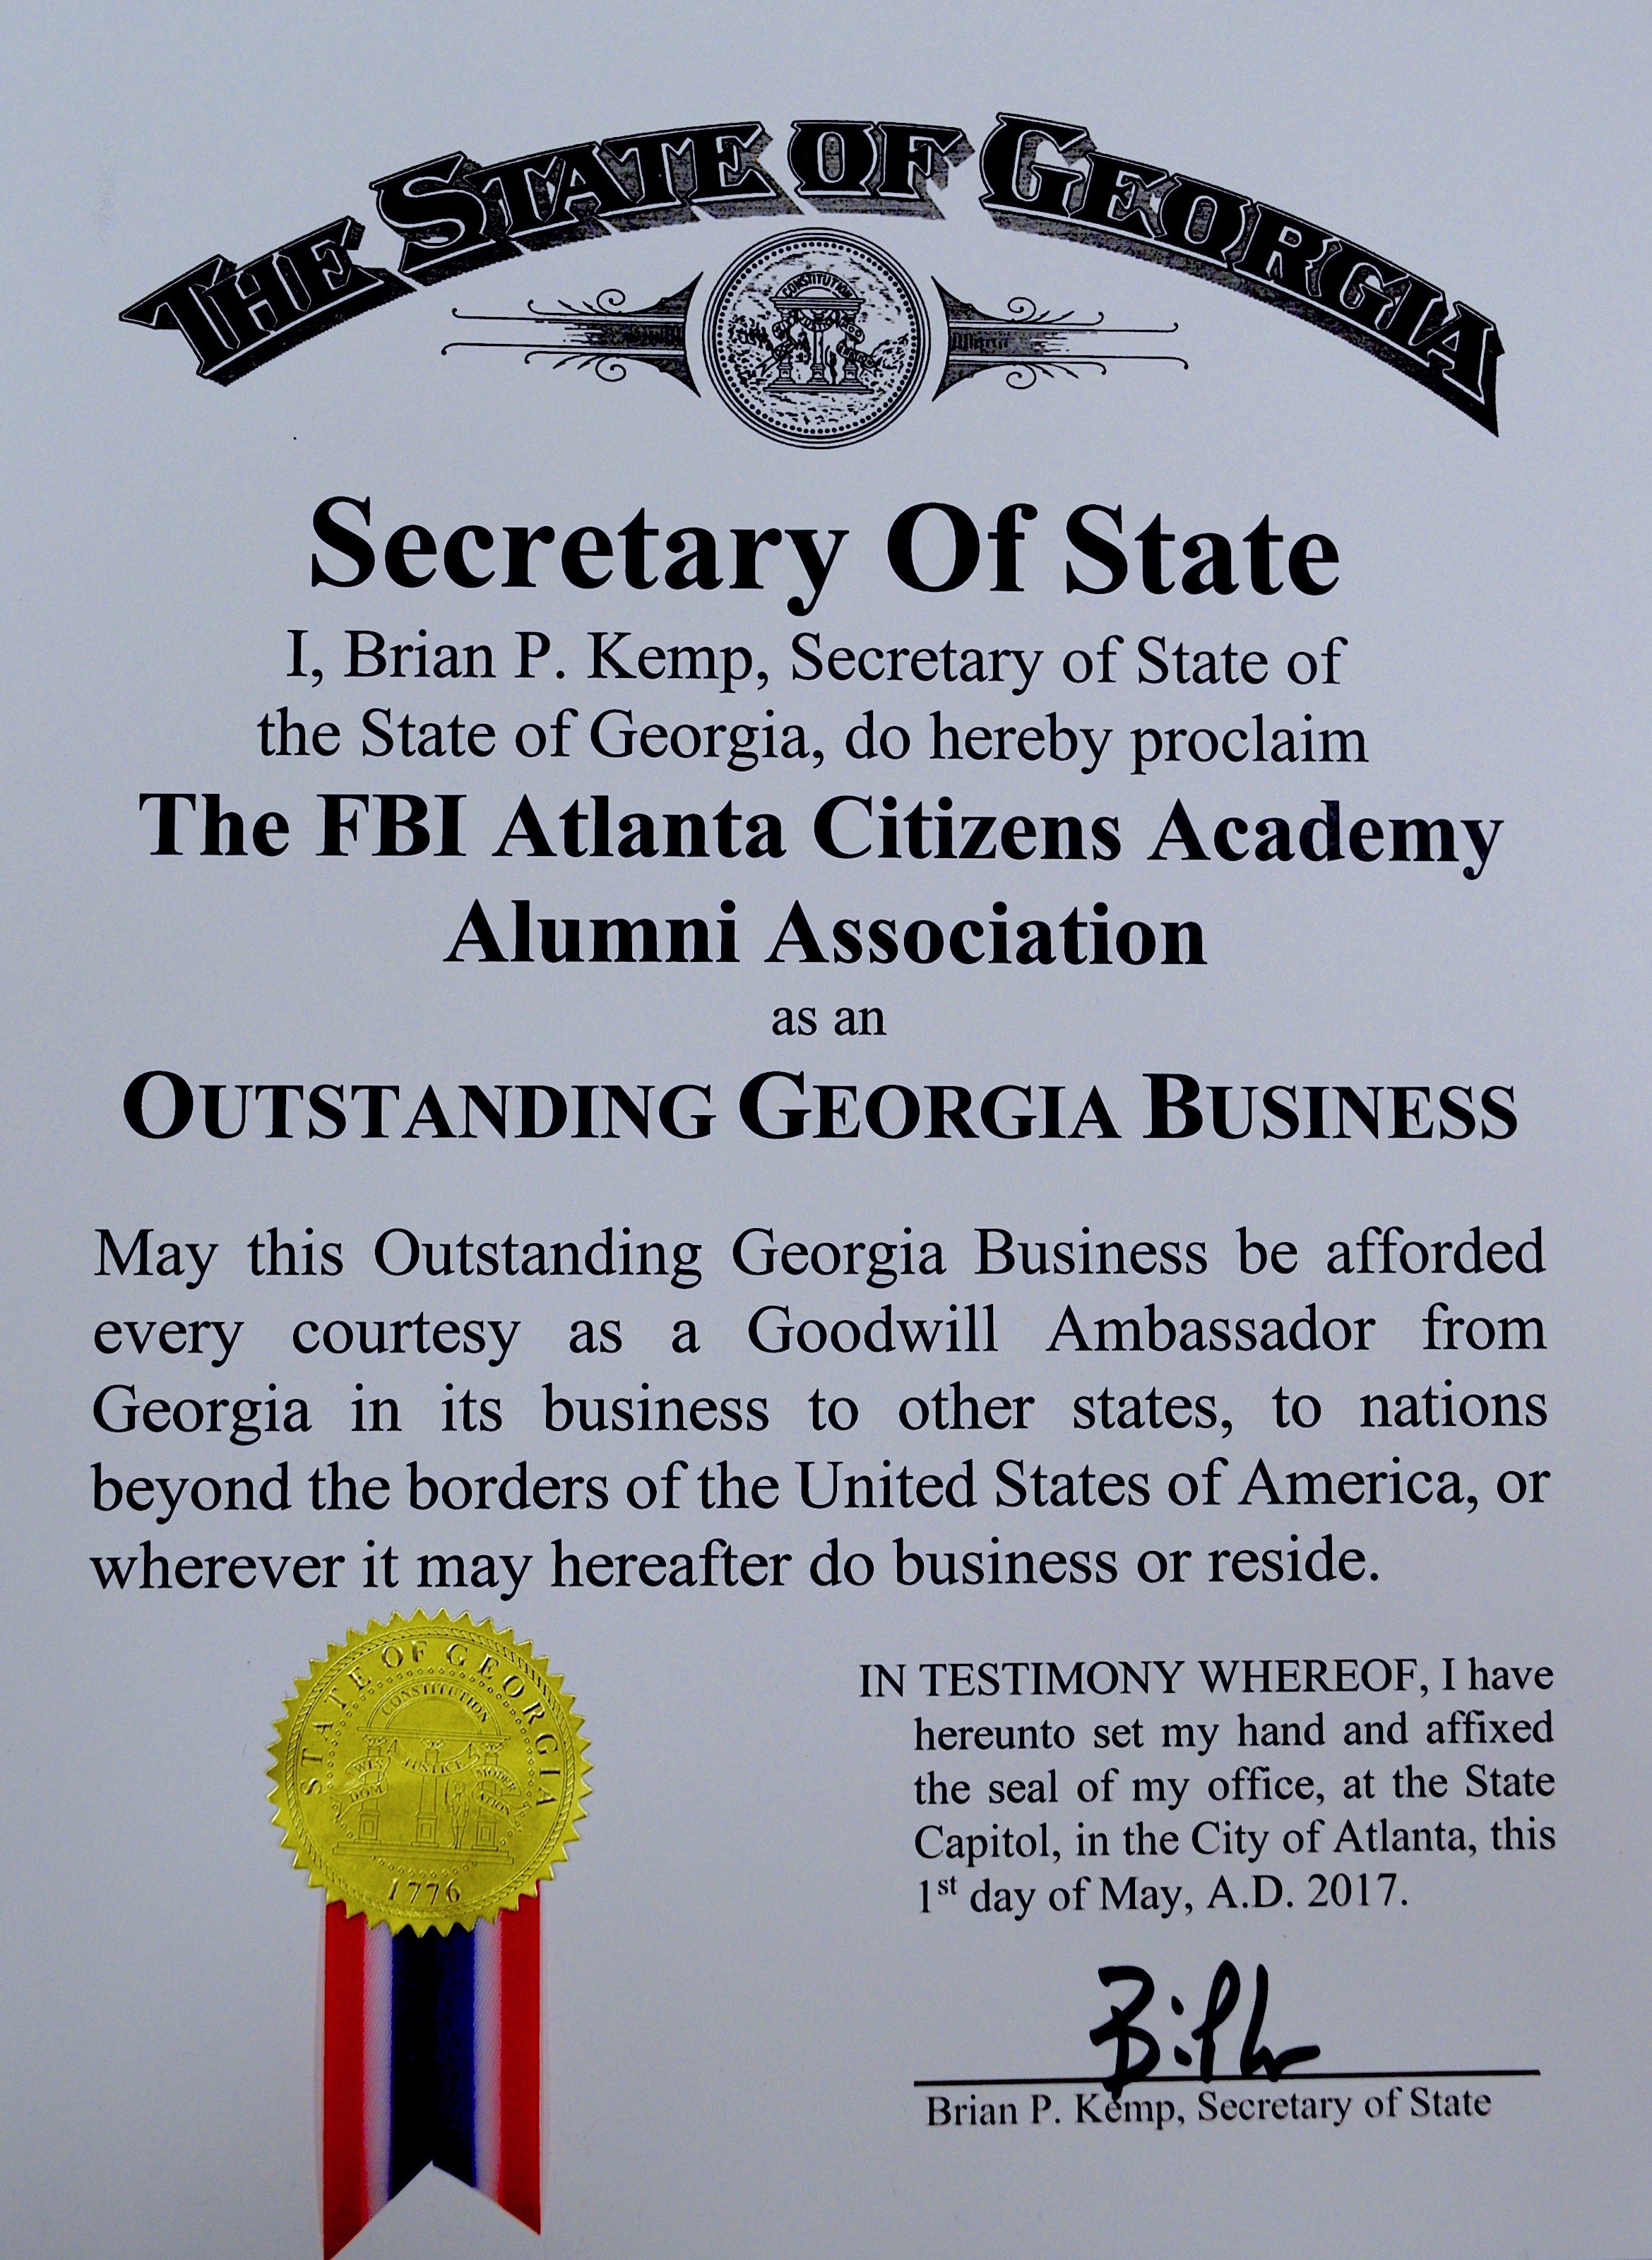 Sec. of State Proclamation